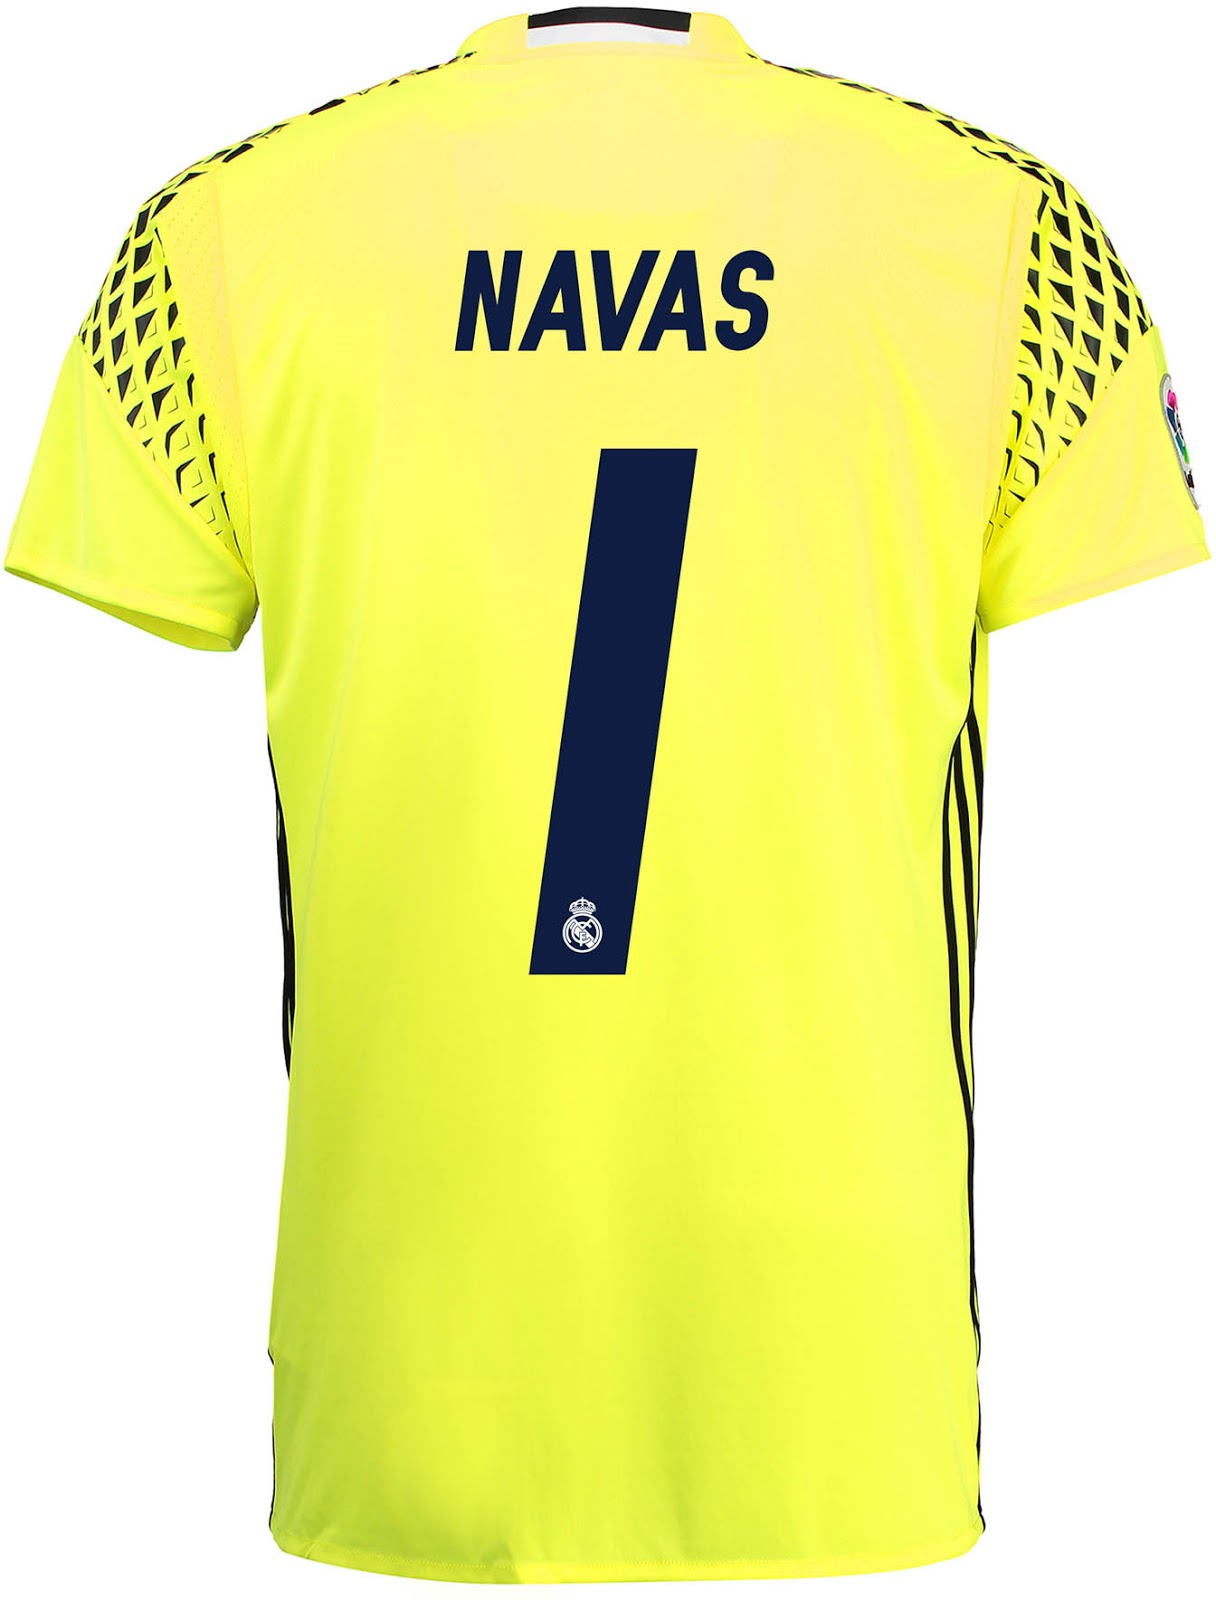 also based on the adidas onore 16 goalkeeper teamwear jersey the real madrid 2016 17 goalkeeper home jersey is yellow and black - Yellow Home 2016